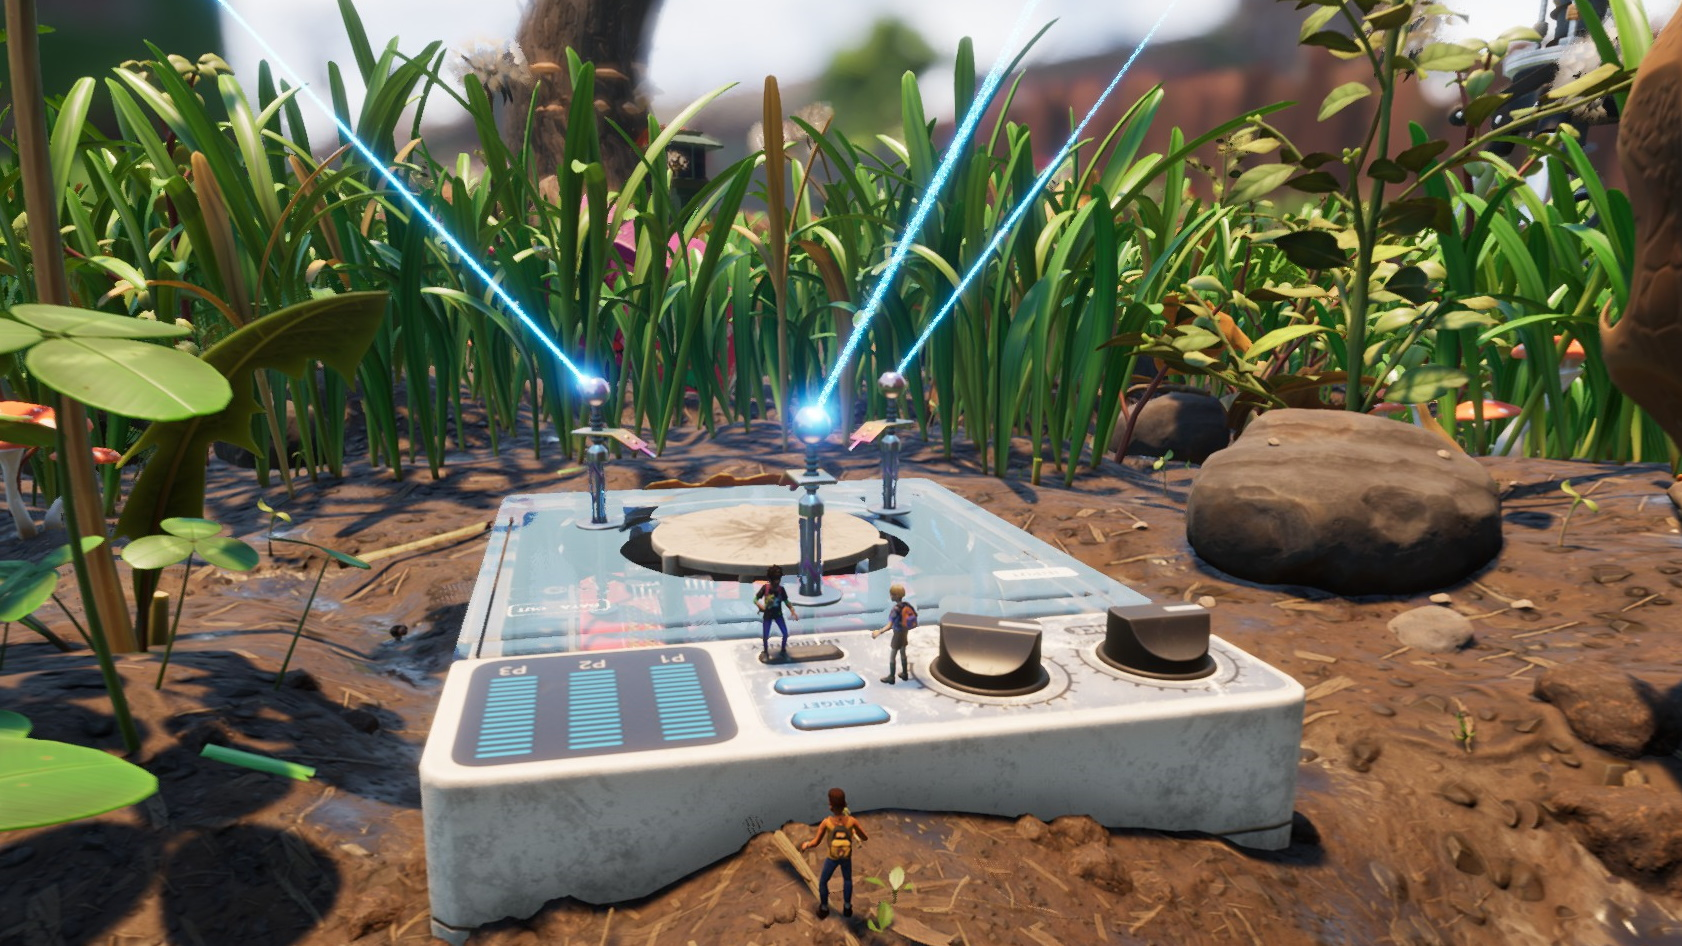 A zoomed out view of several tiny players standing on and around a small (but huge to them) device surrounded by soil and huge grass stalks. Lasers beam out of antennae on the device.